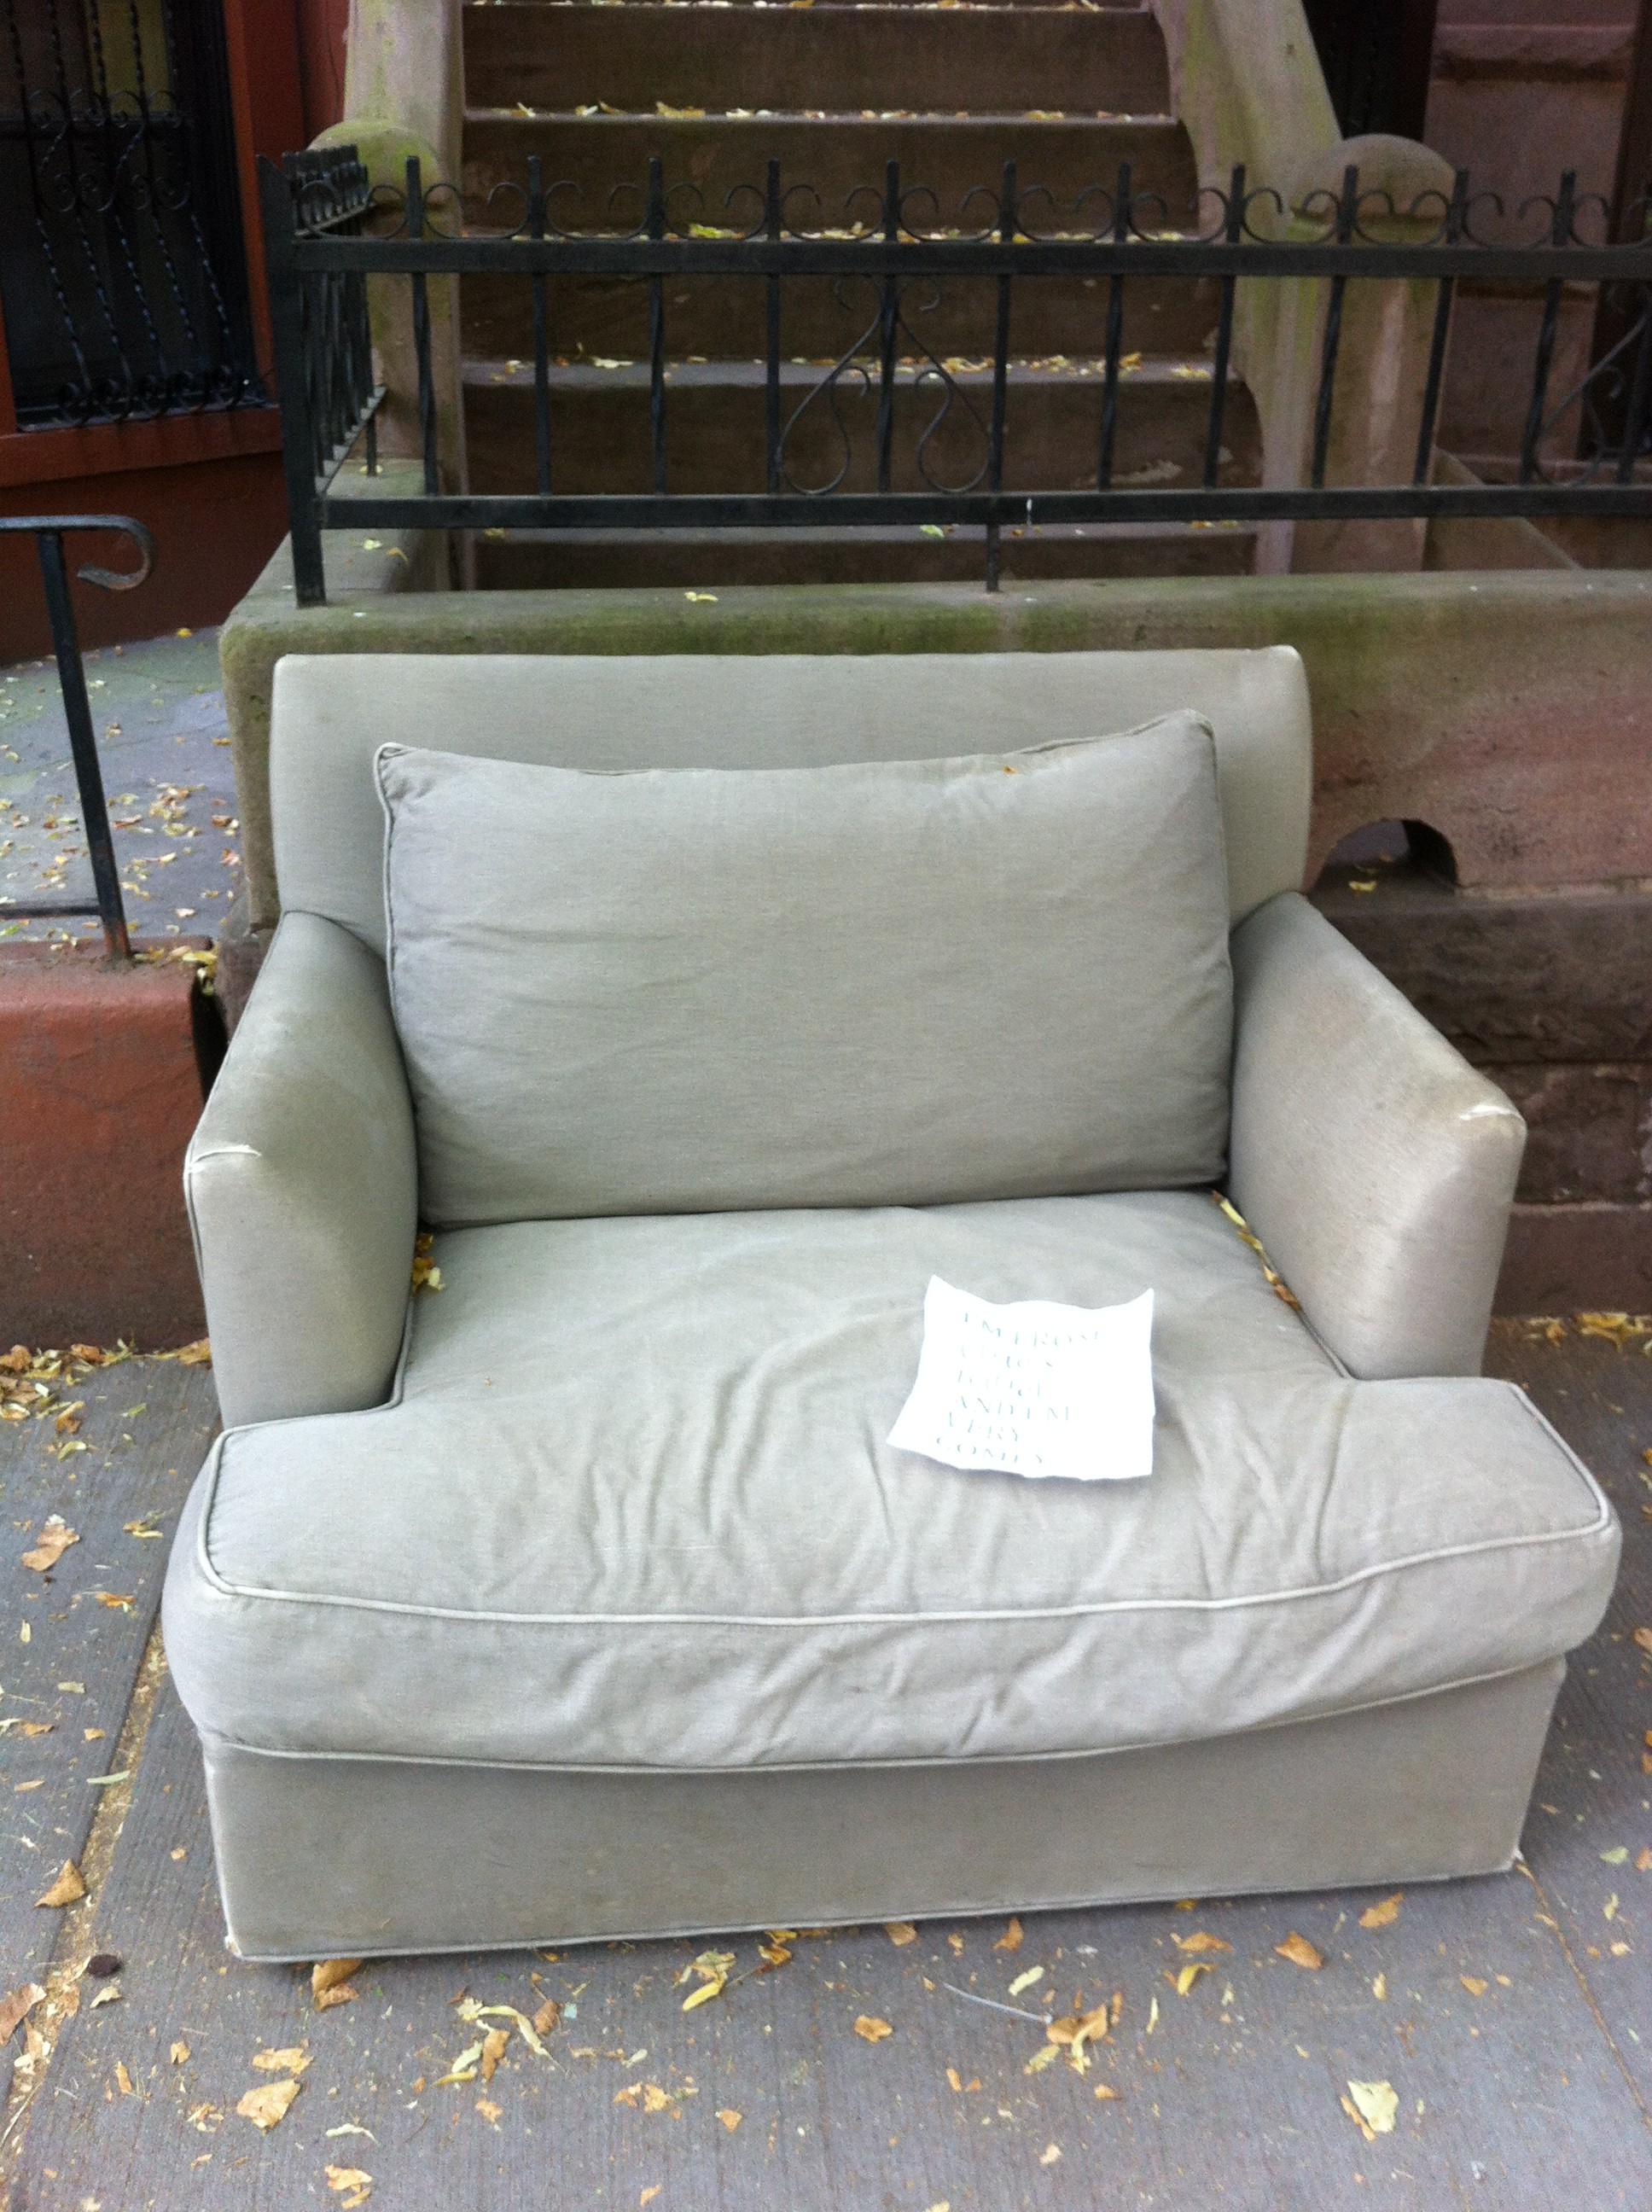 A pic of a chair from Crate & Barrel on the curb in NYC